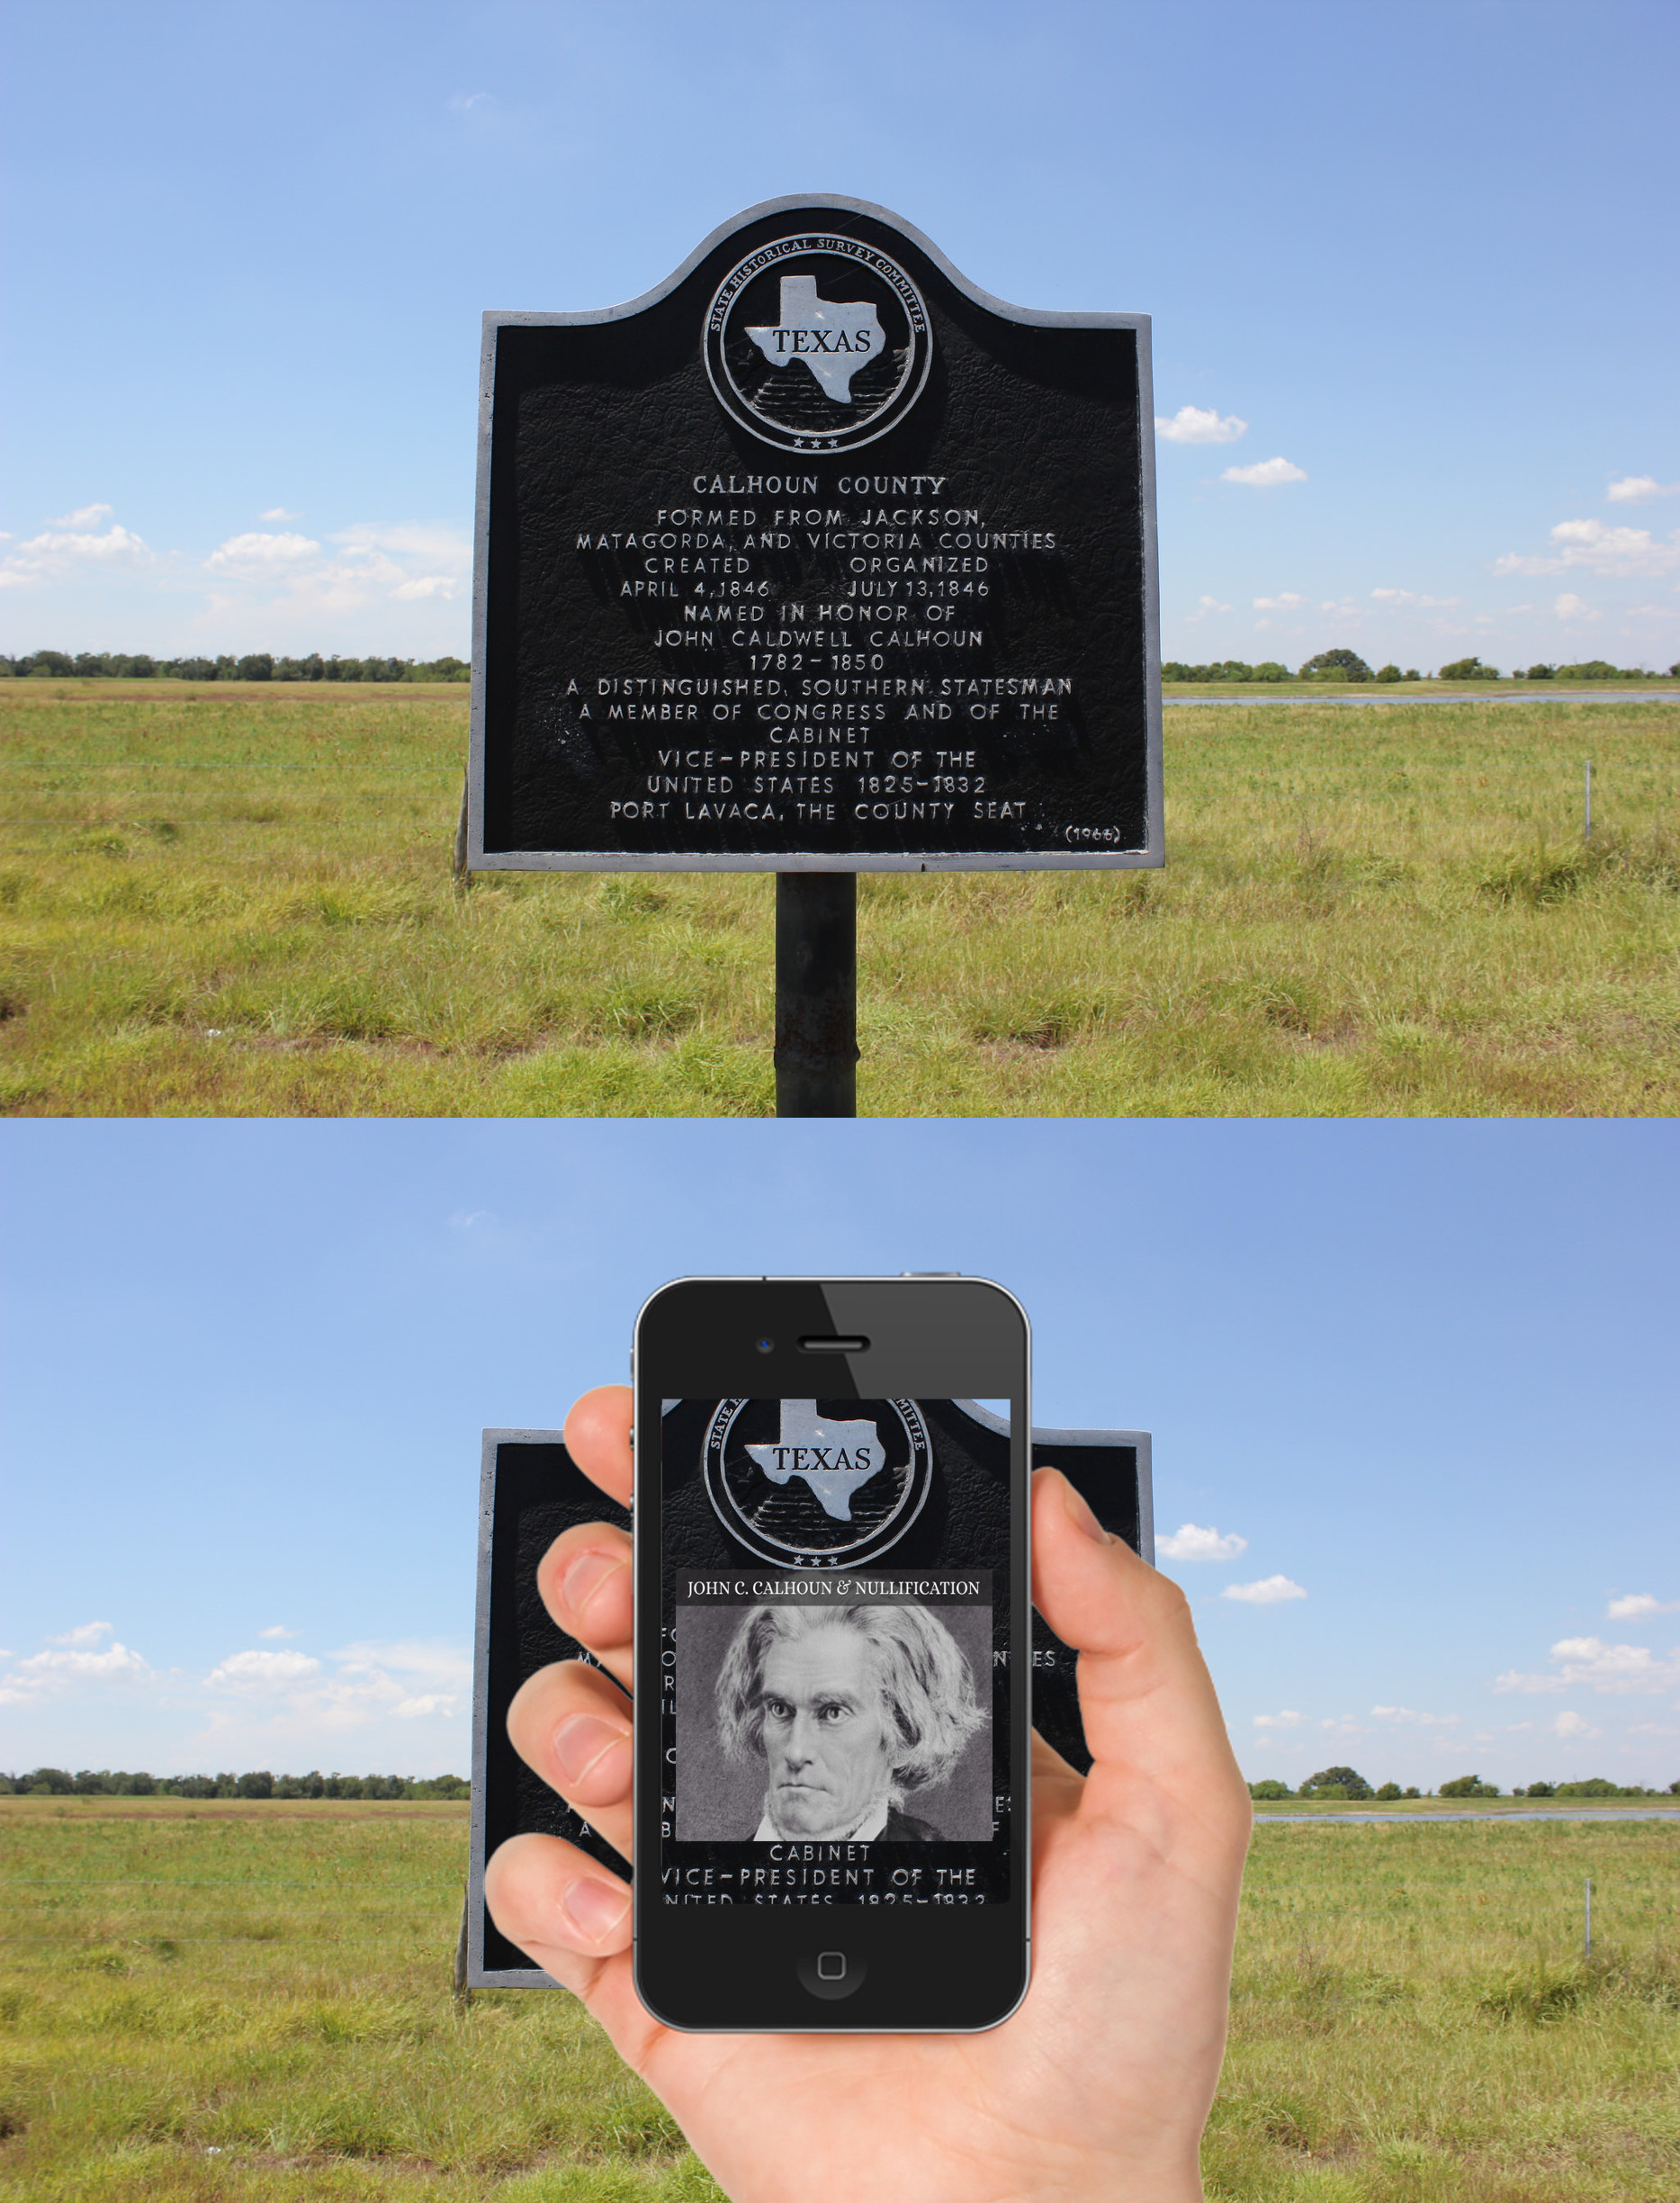 Augmented reality can be used to overlay digital information onto existing texts such as historical markers. This modified image is based on a photograph by Nicholas Henderson. 2015.